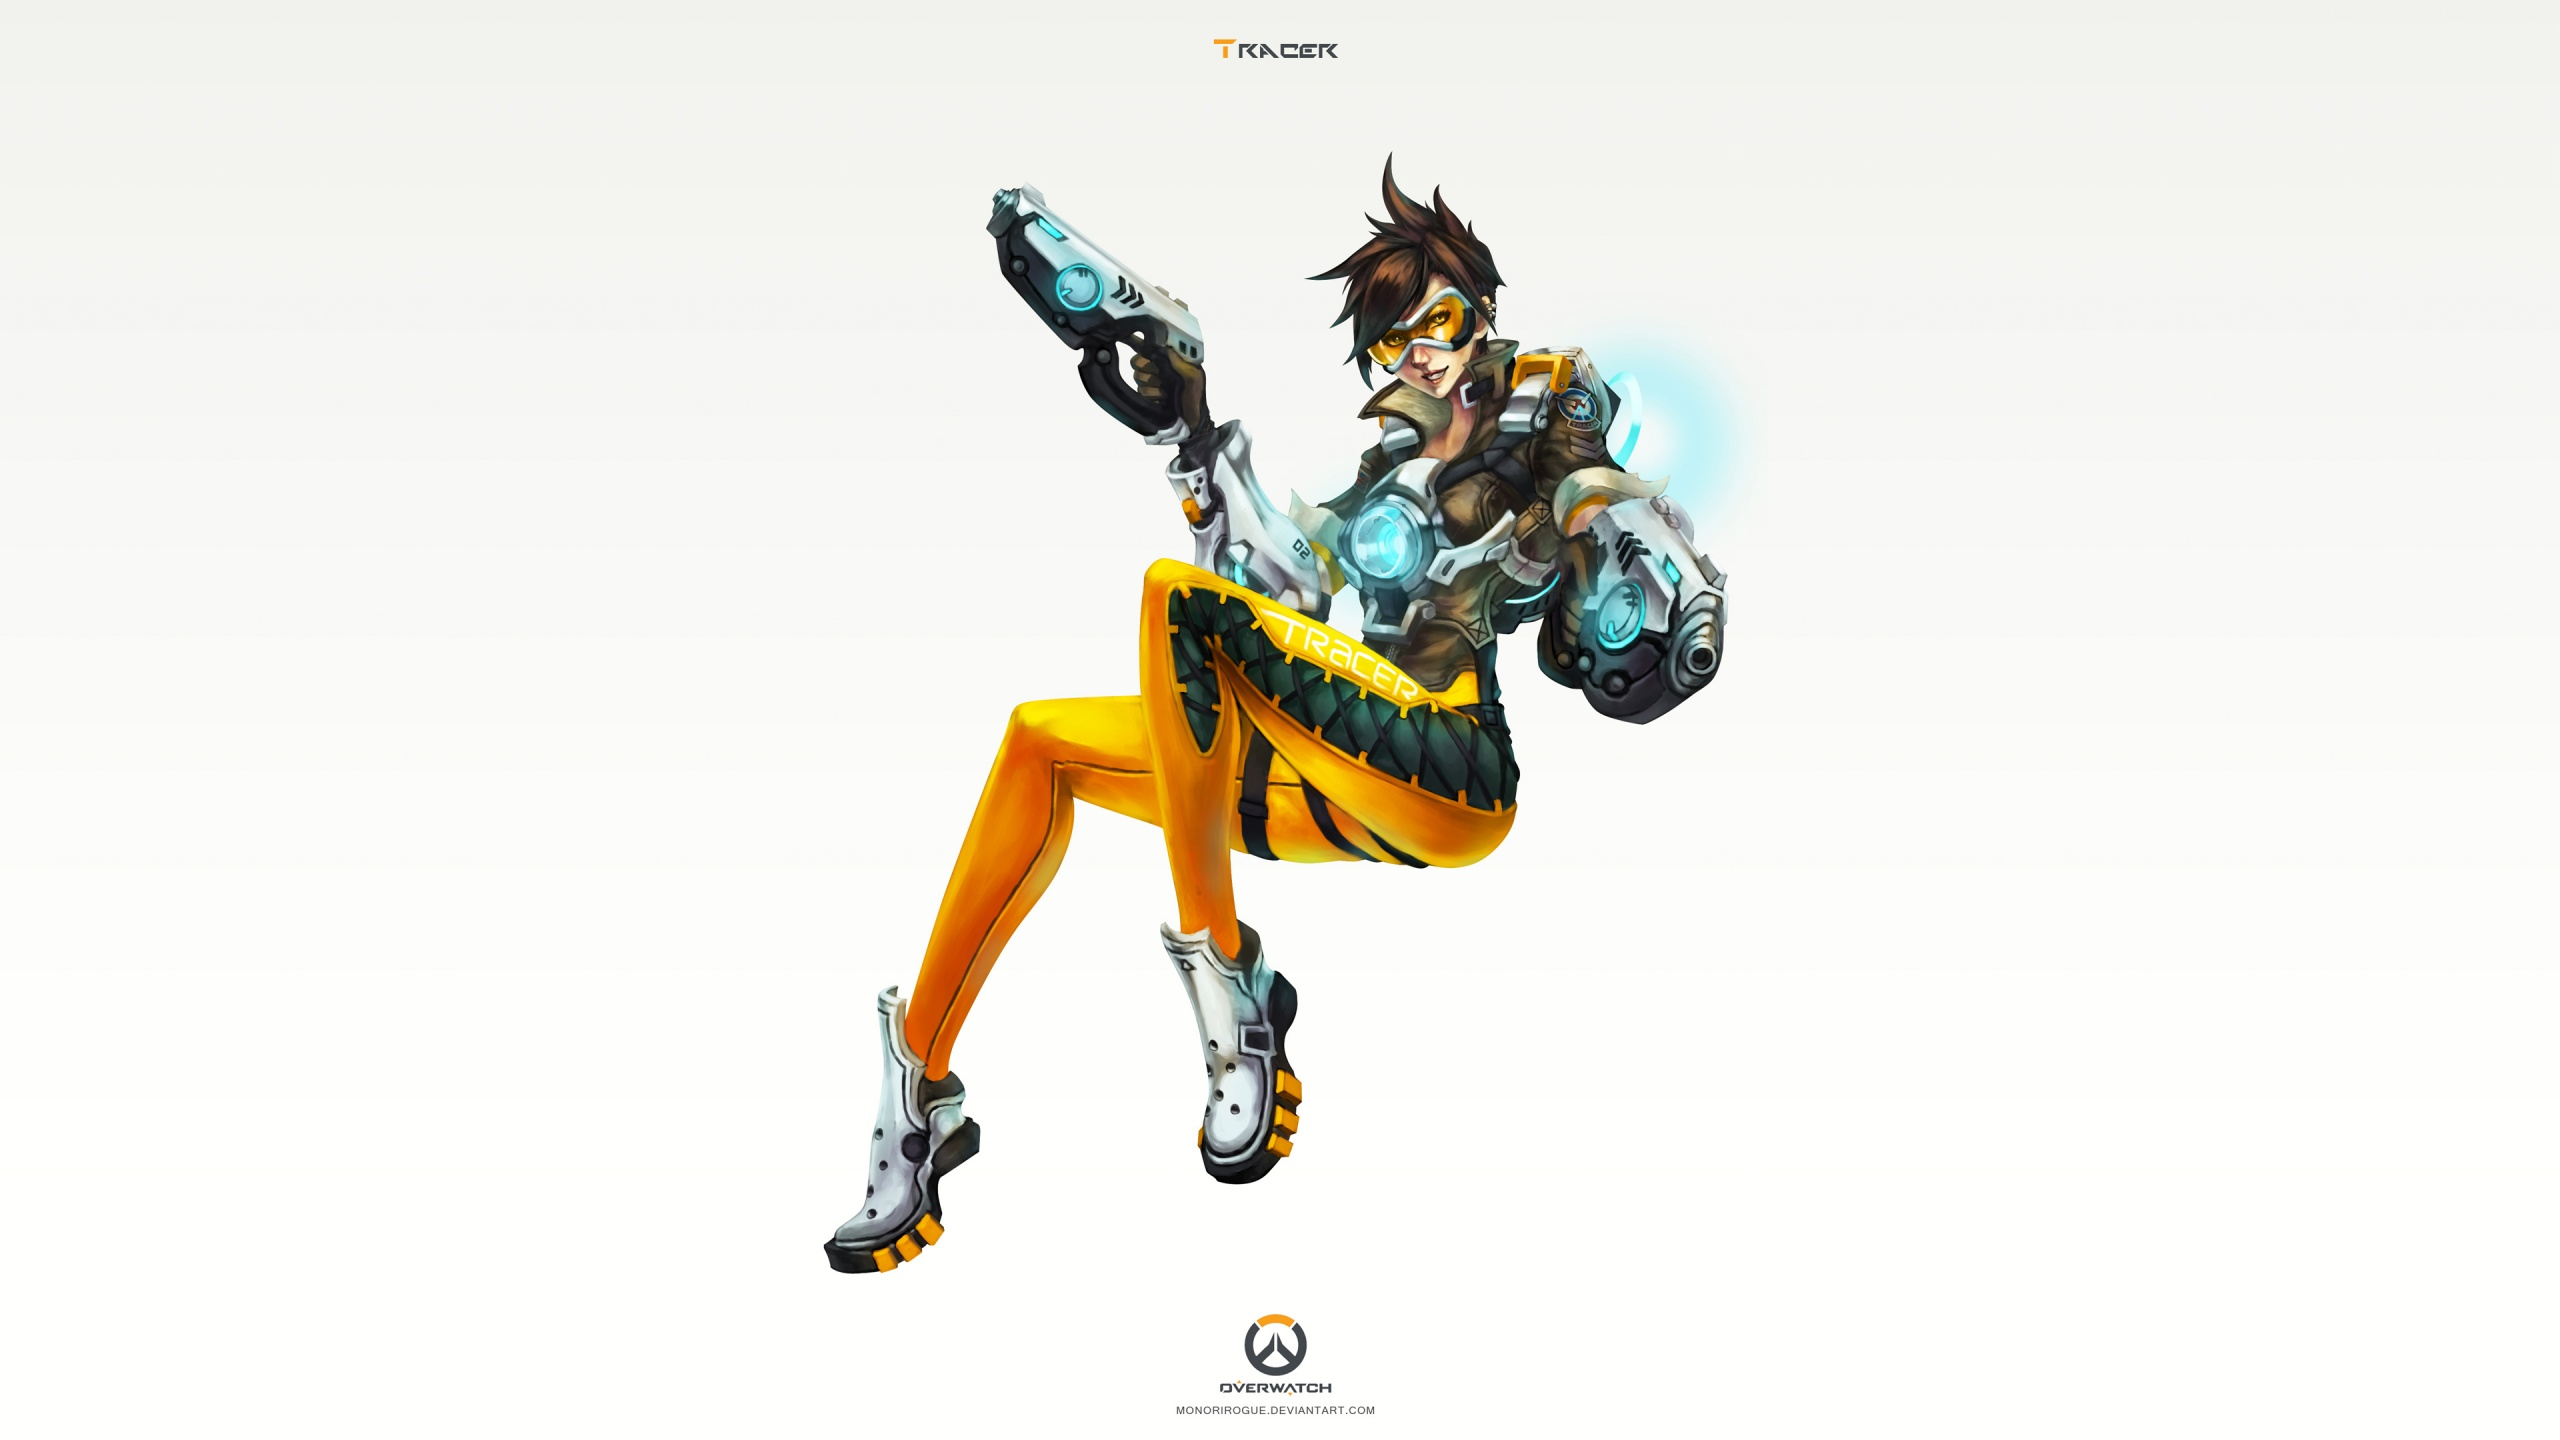 Tracer Overwatch Art 4K Wallpapers HD Wallpapers 2560x1440